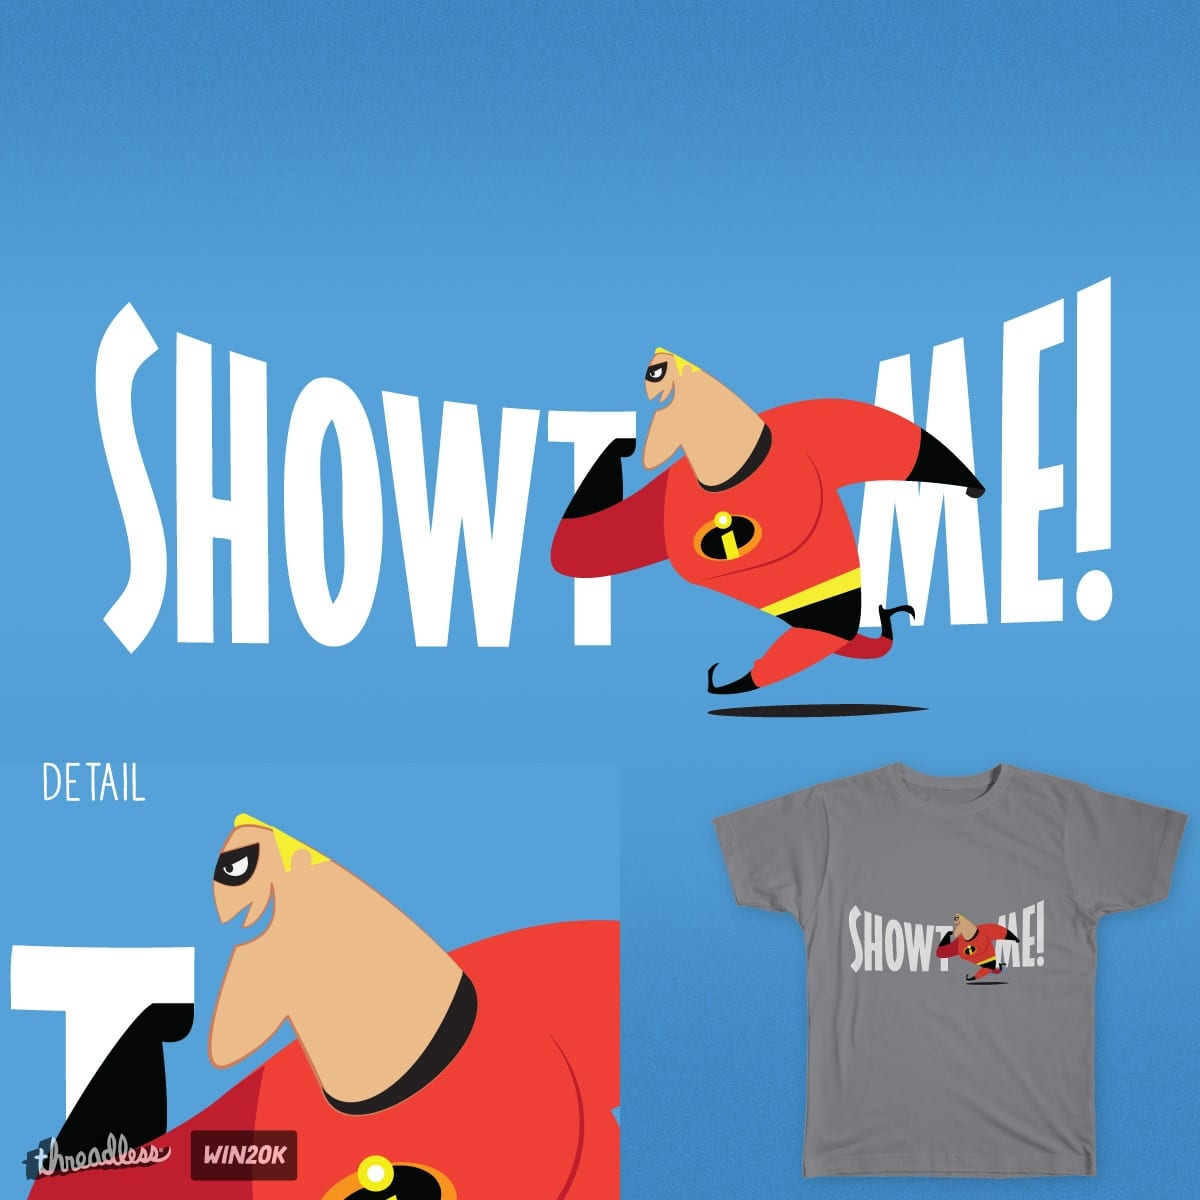 Showtime! by sonofeastwood on Threadless